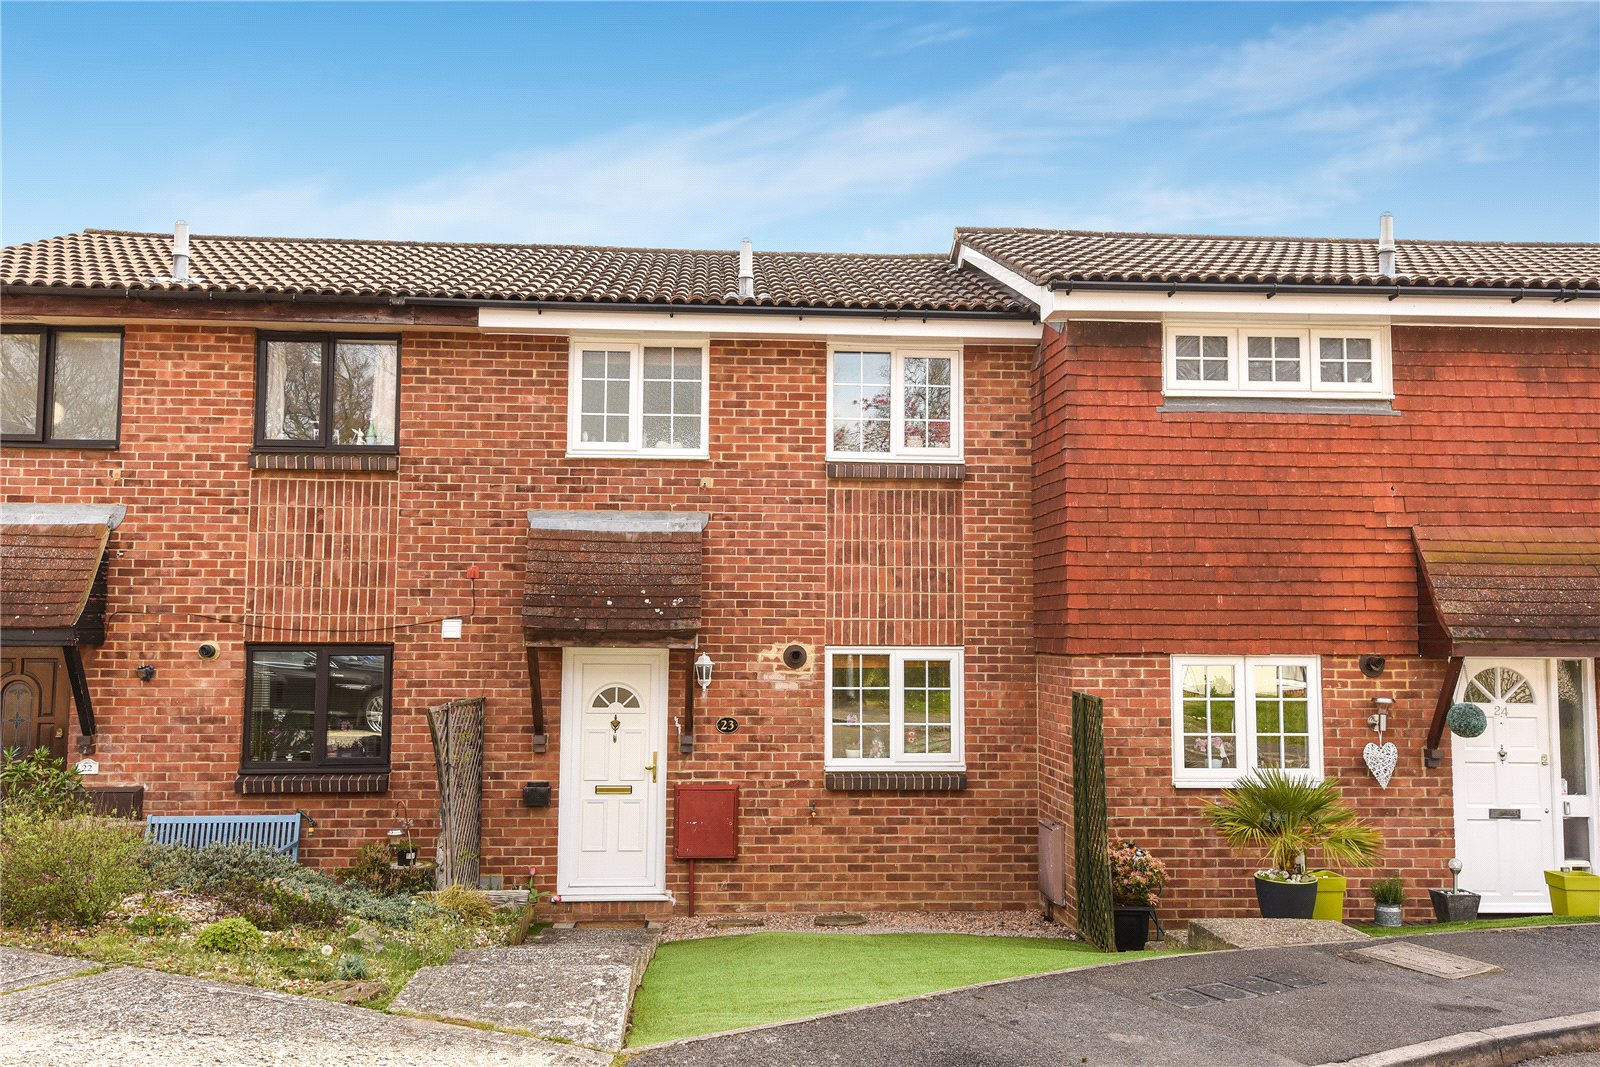 3 Bedrooms Terraced House for sale in Bittern Close, College Town, Sandhurst, Berkshire, GU47